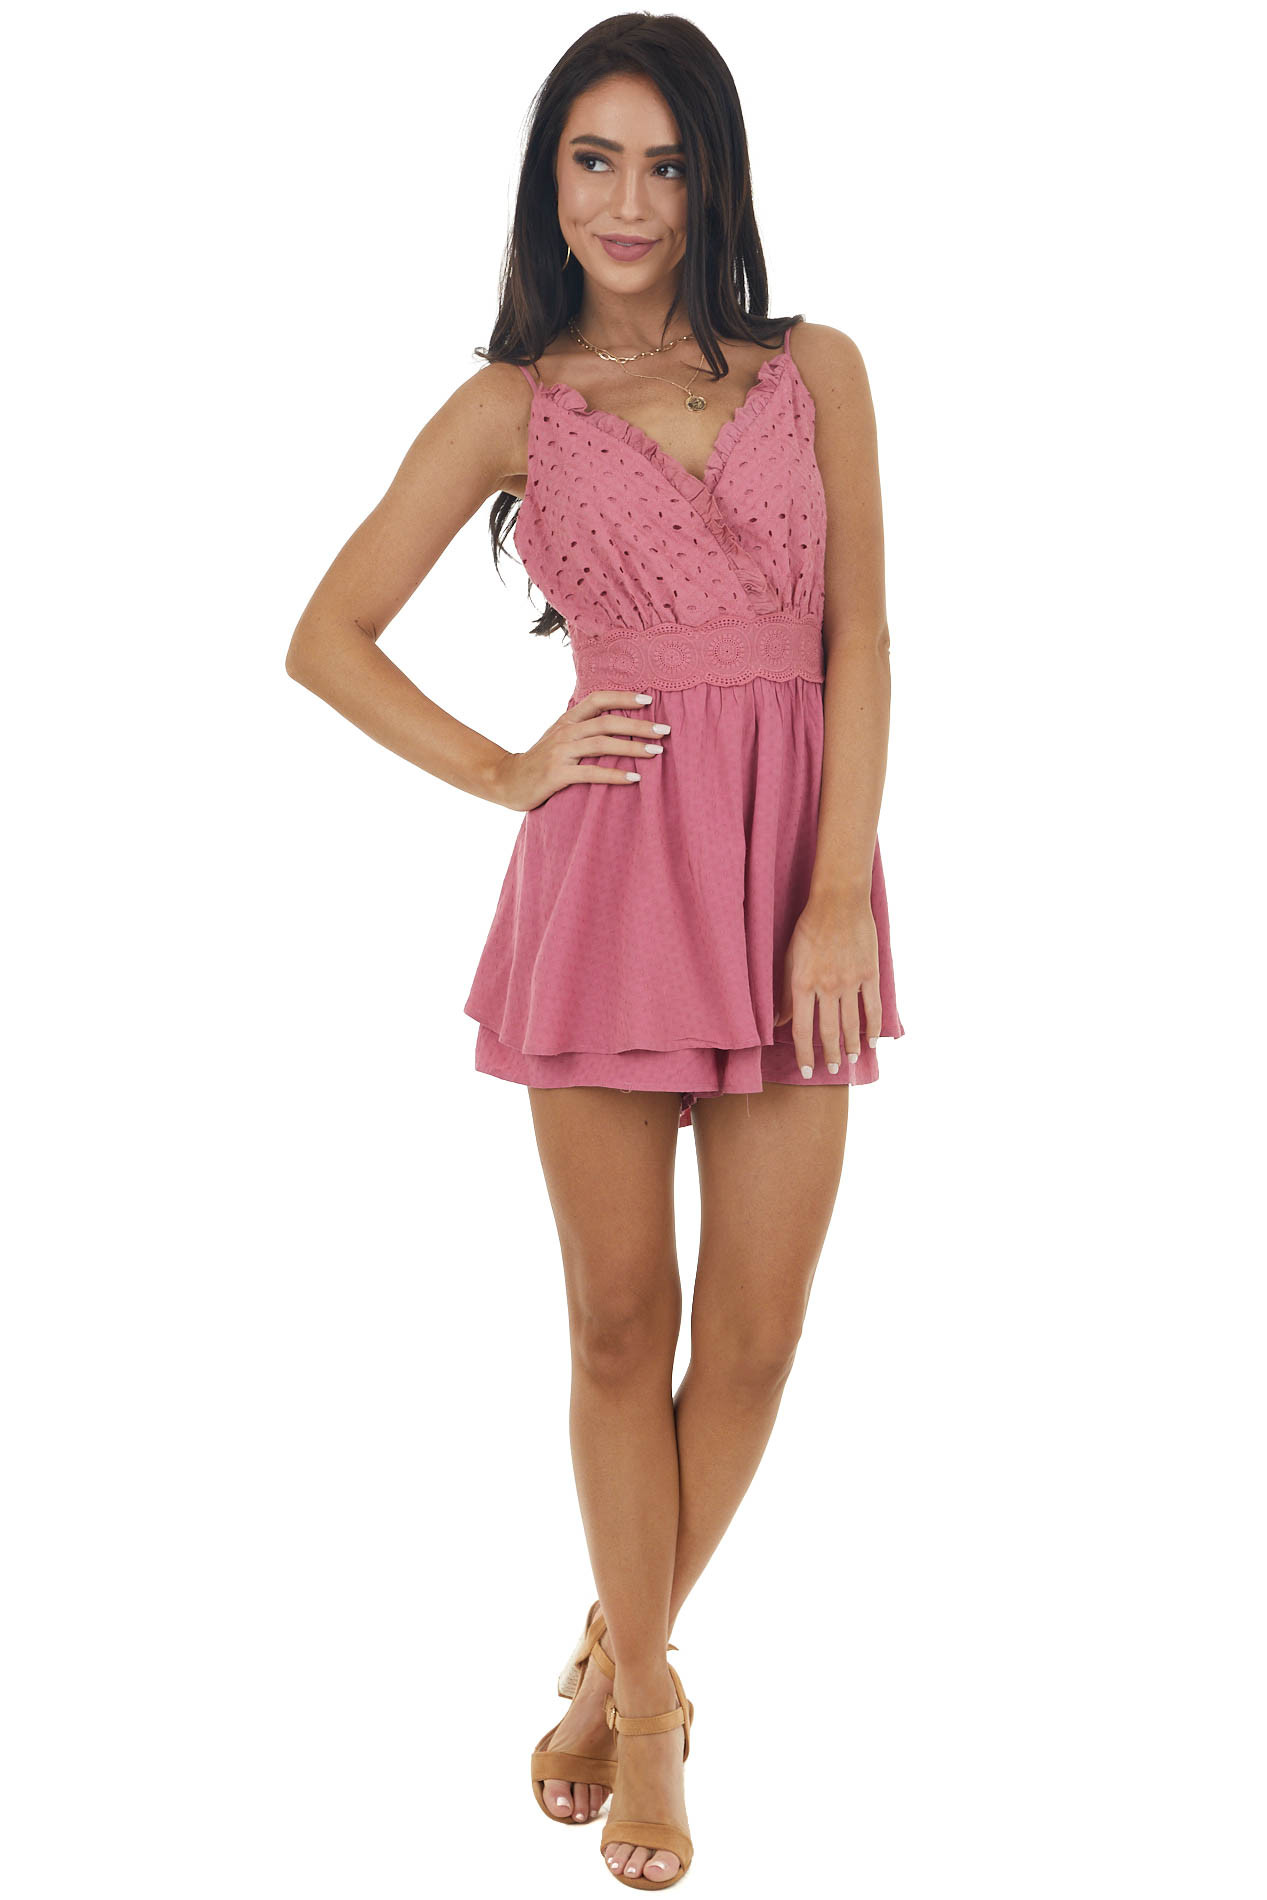 Thulian Pink Sleeveless Romper with Eyelet Lace Details